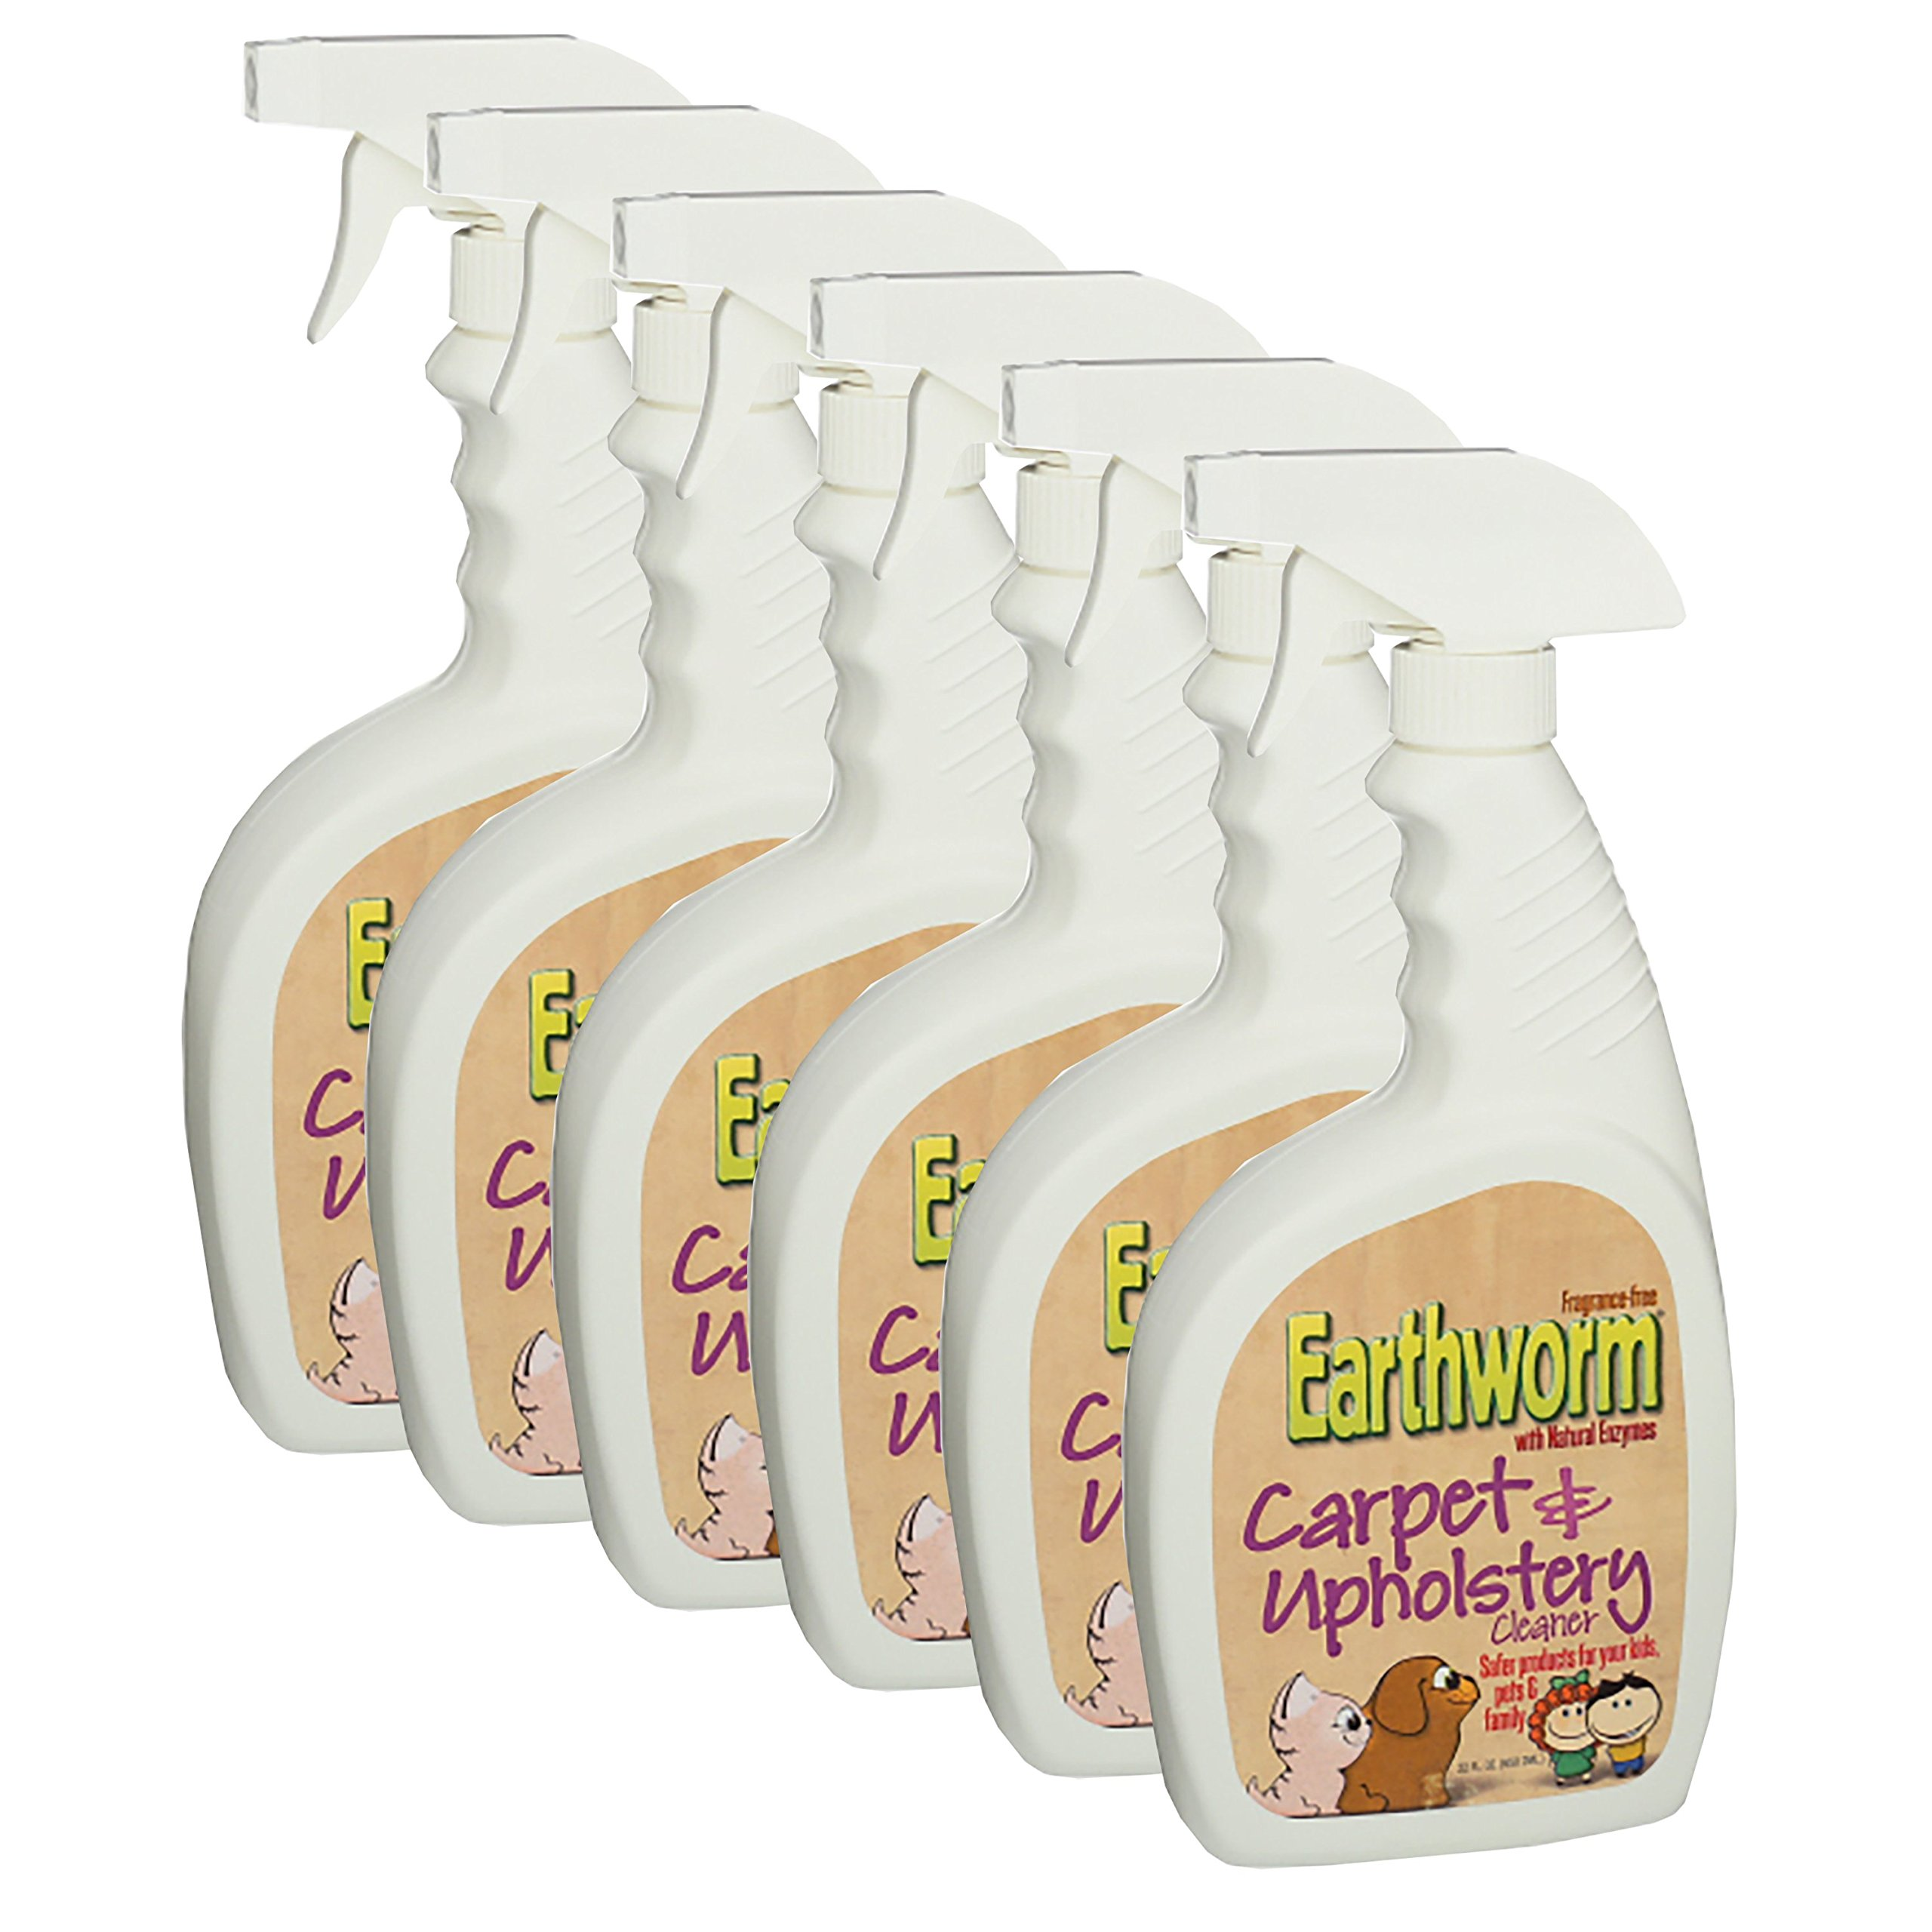 Earthworm Carpet & Upholstery Cleaner Spot & Stain Remover - Natural Enzymes, Safer for Family, Environmentally Responsible - 22 oz (Pack of Six (6))